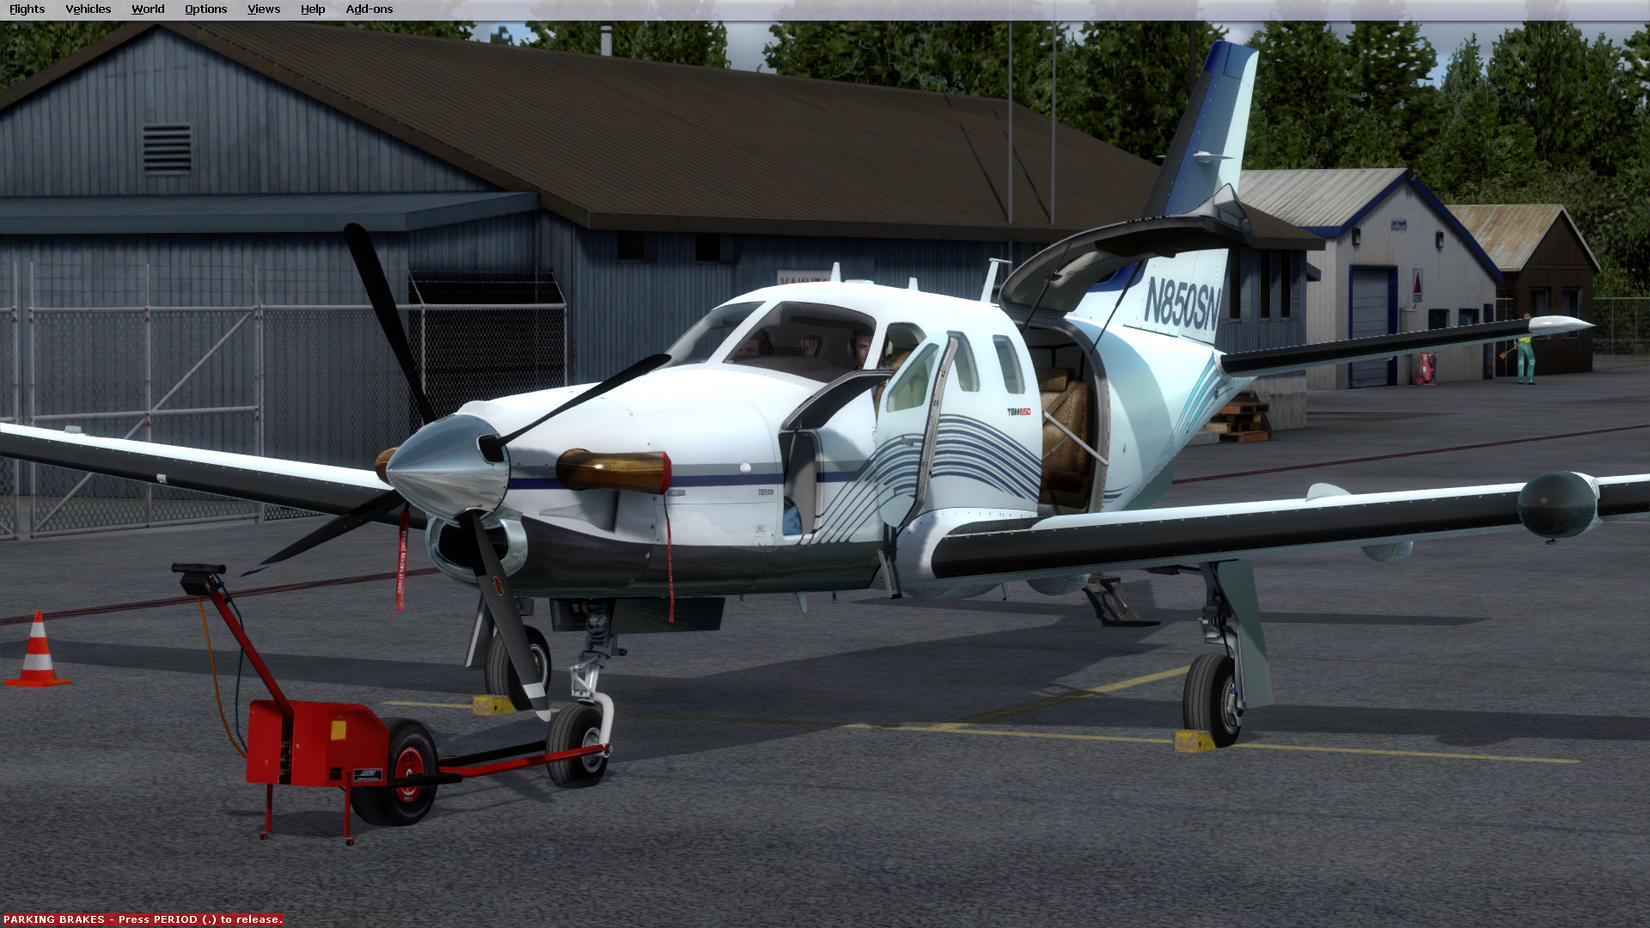 Another try   TBM 850 in P3D - SimHQ Forums